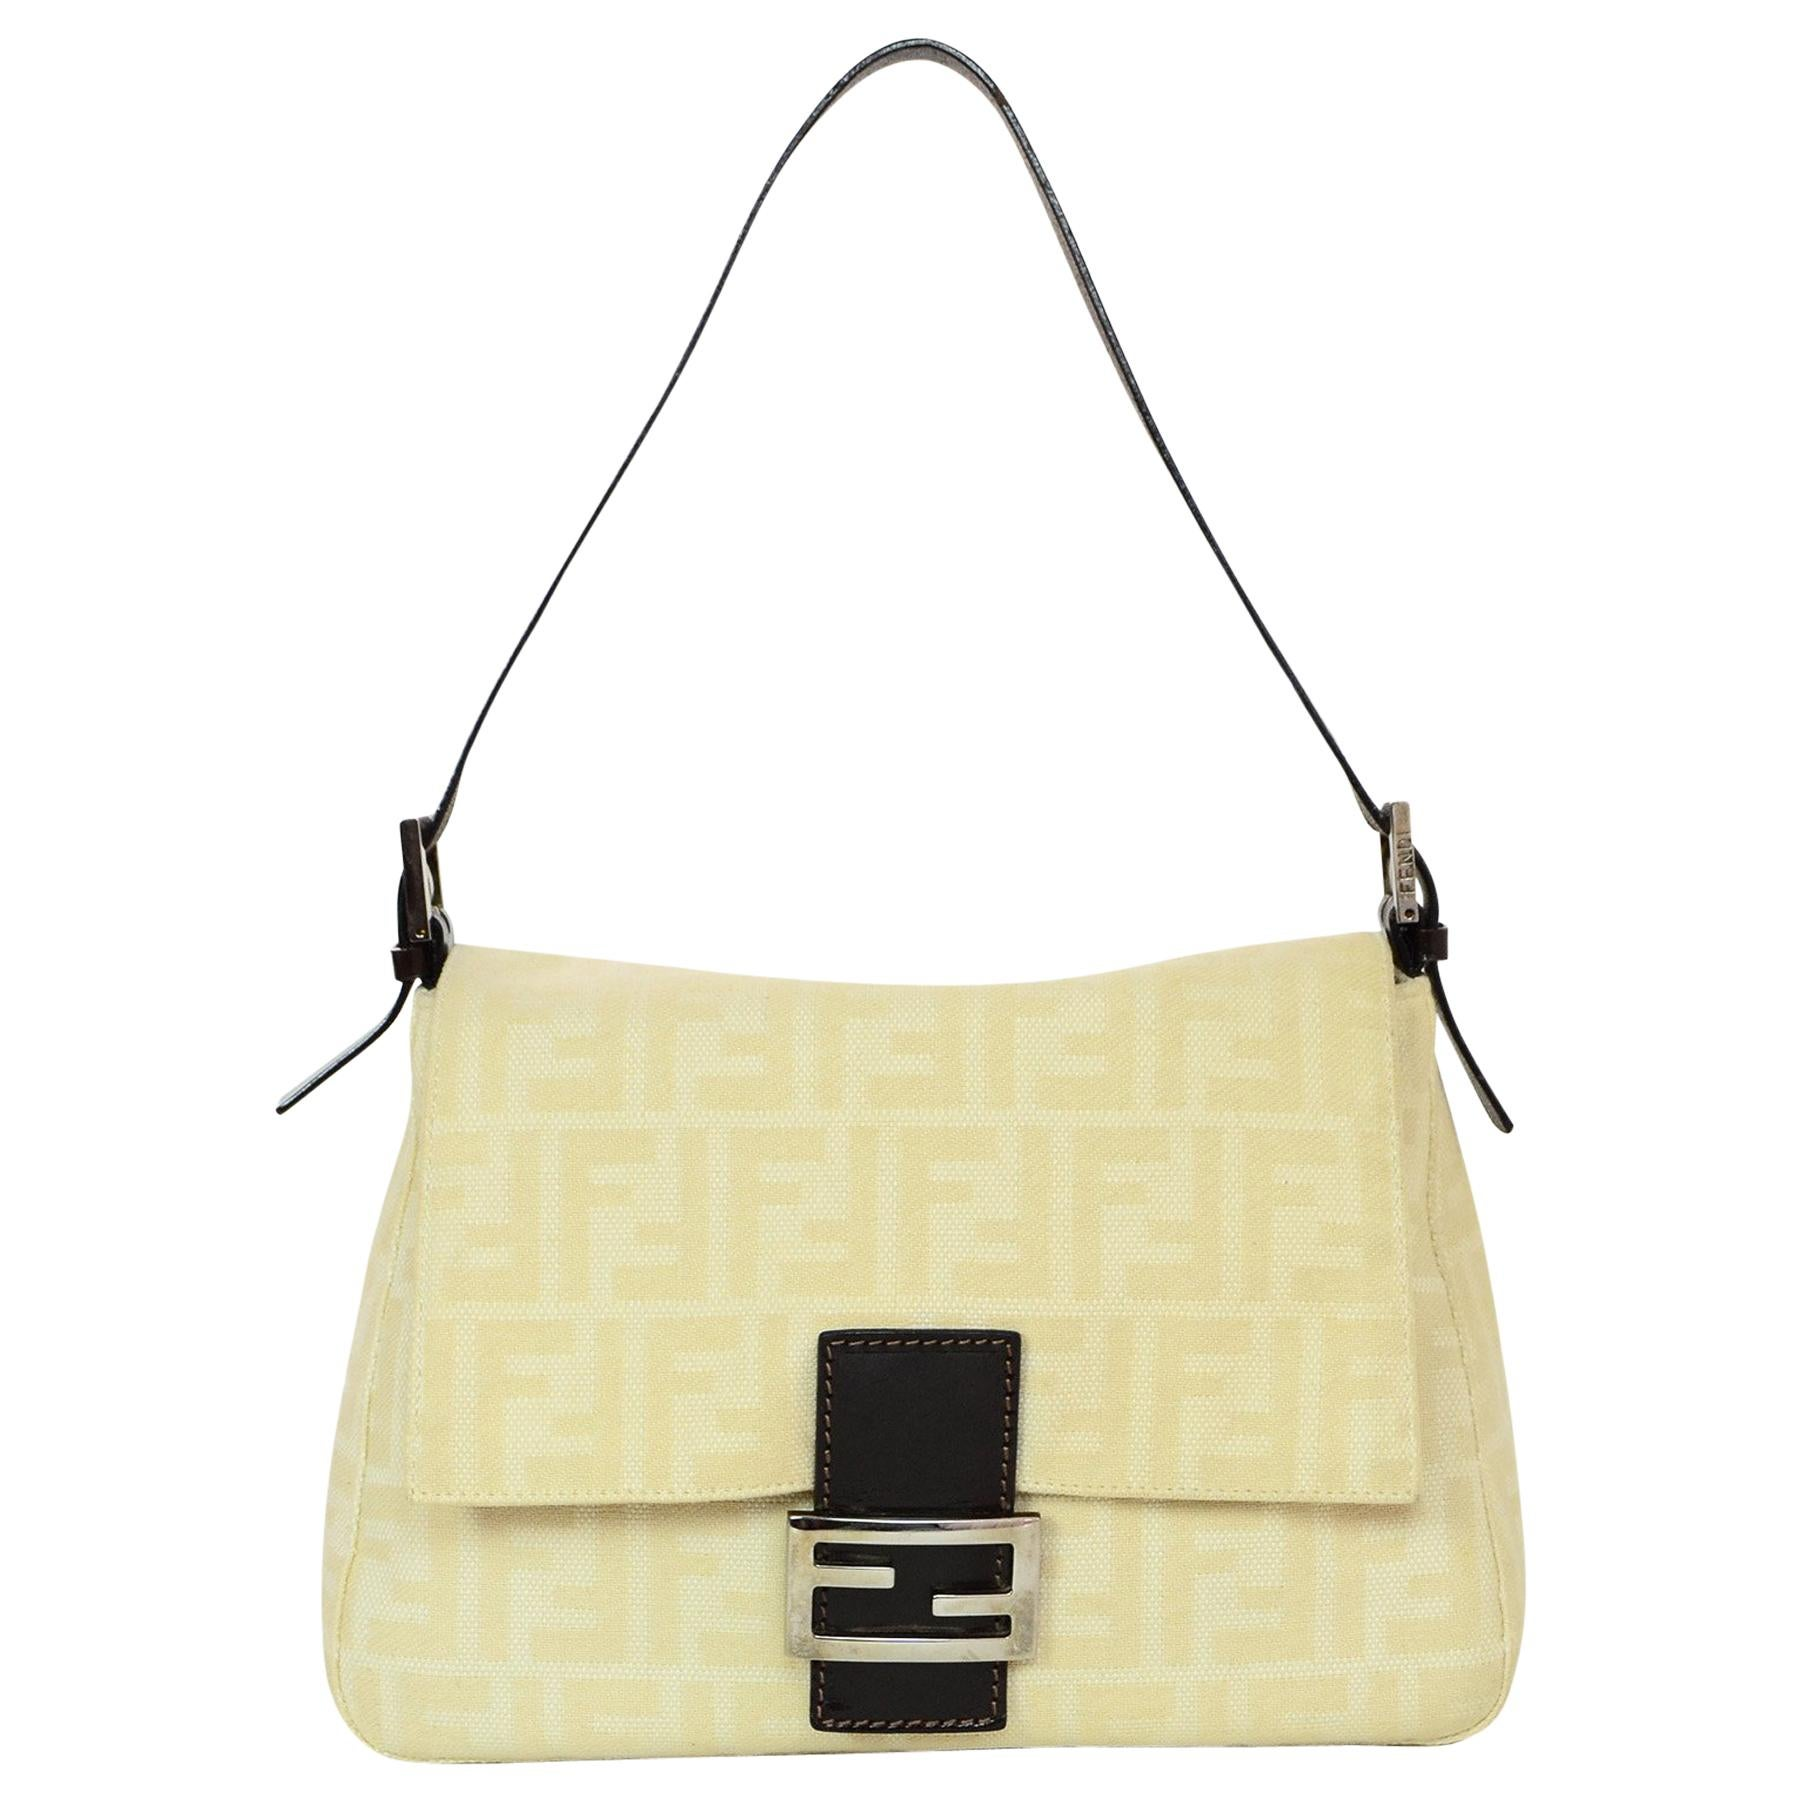 31b15431ee Fendi Beige Brown Monogram Mama Zucca Baguette Bag For Sale at 1stdibs